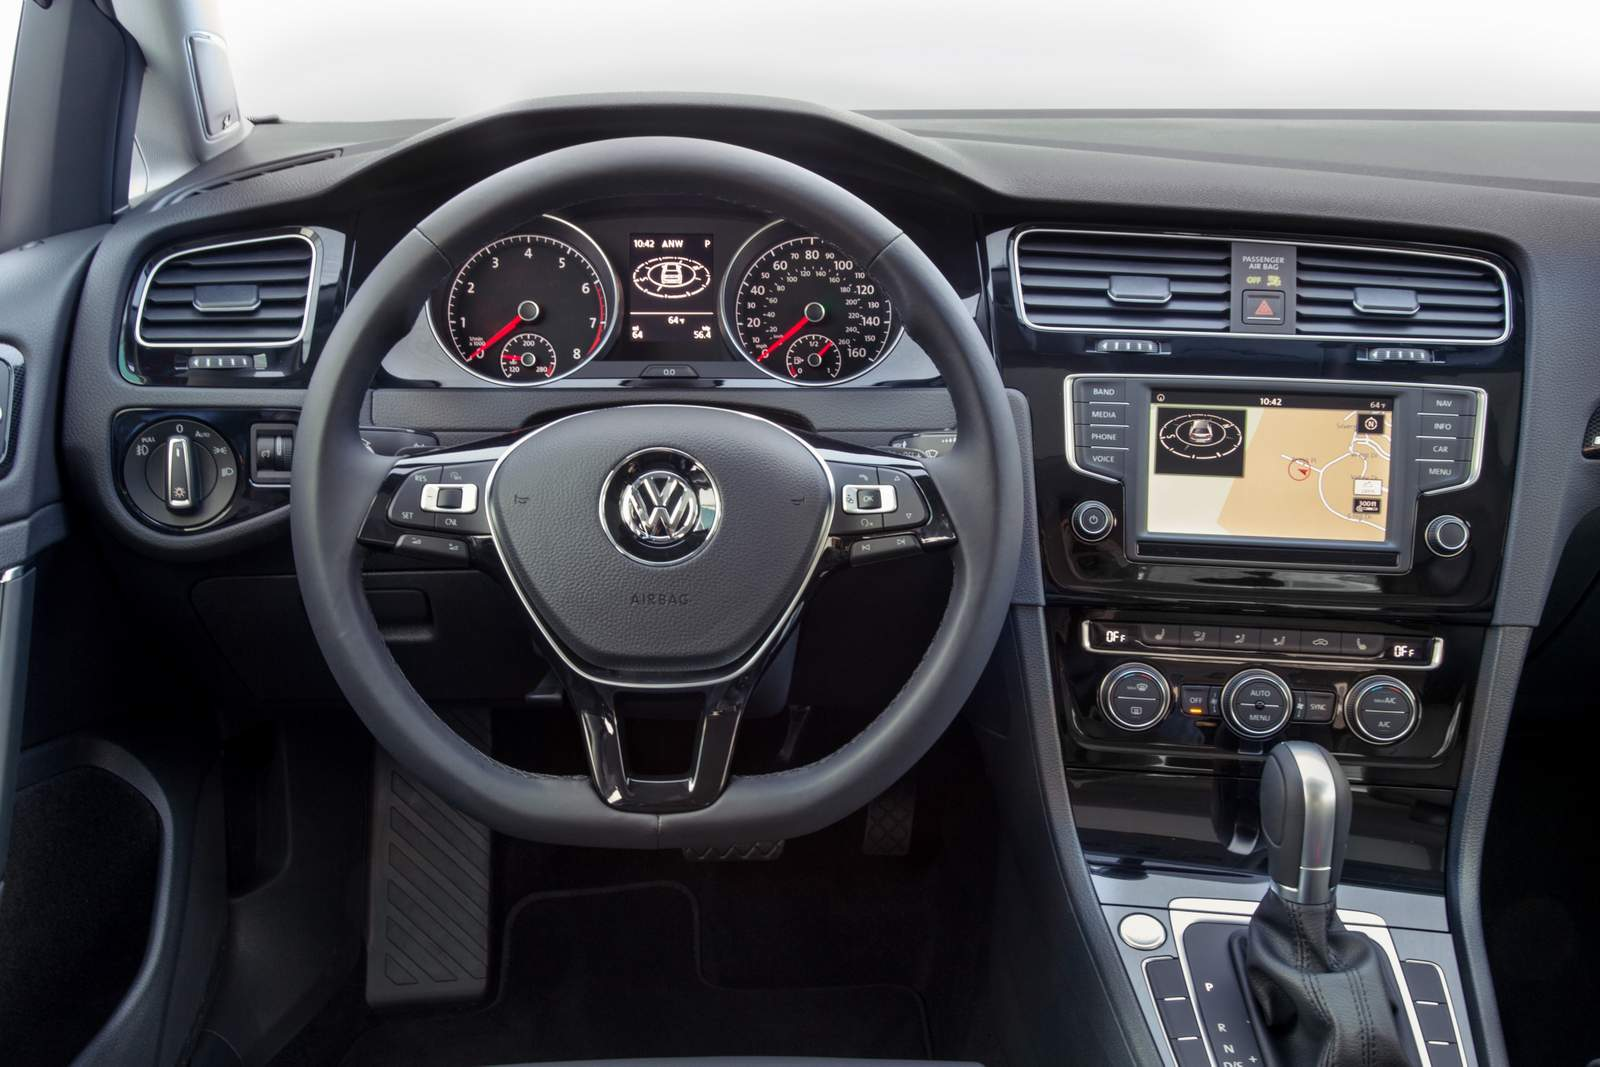 VW Golf 1.4 TSI Highline 2017  - interior